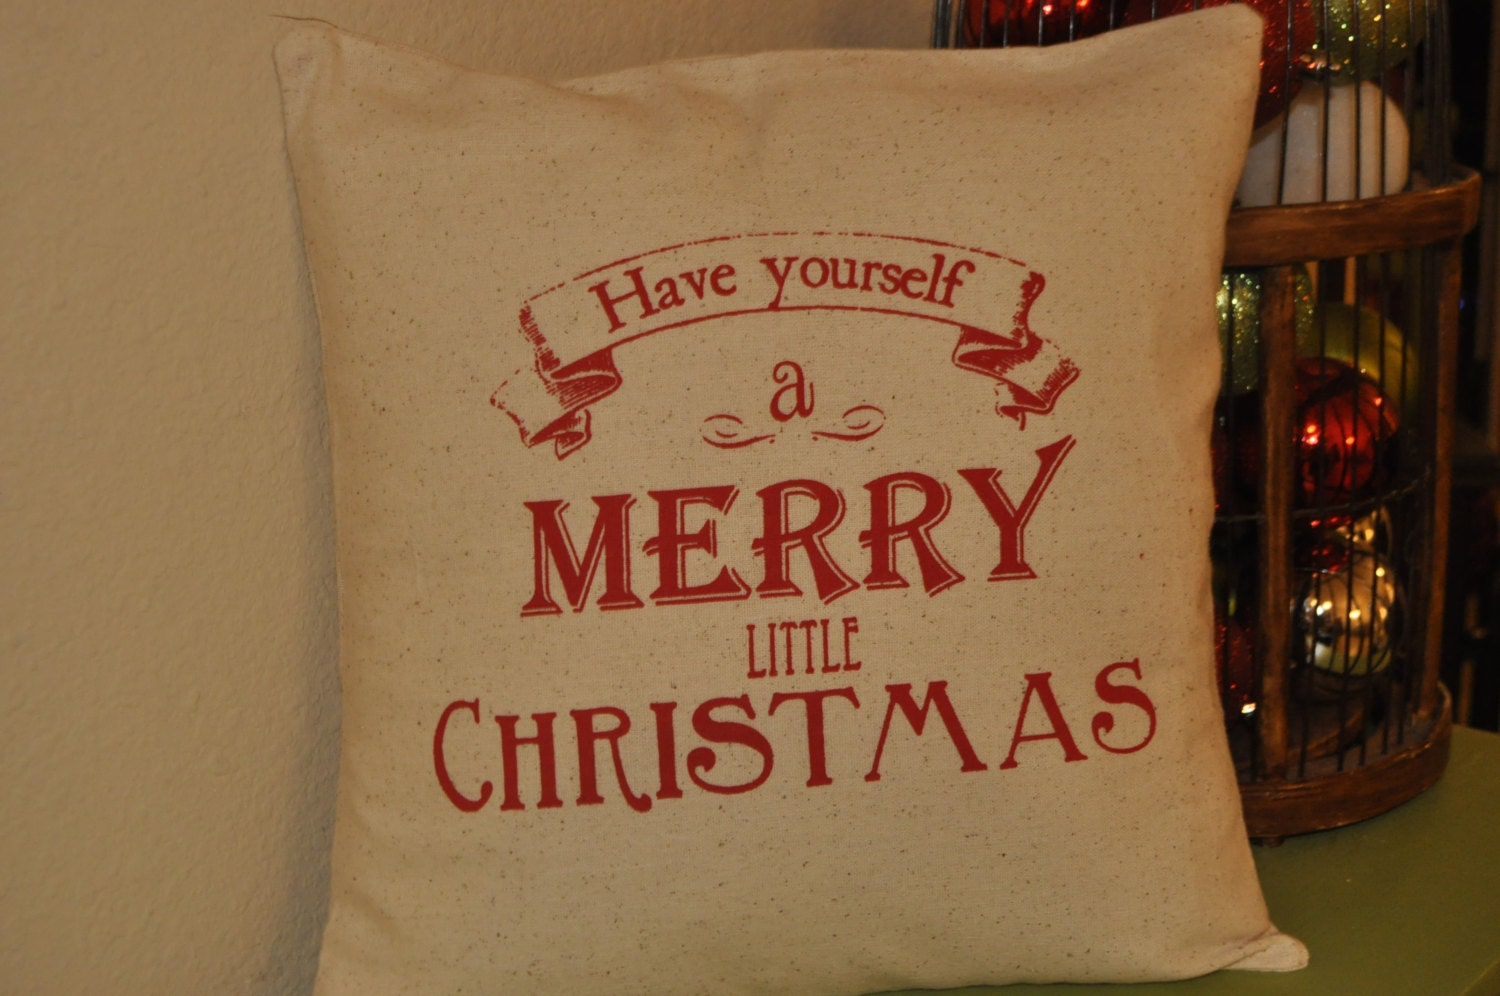 Handmade Have yourself a merry little christmas pillow cover 14x14